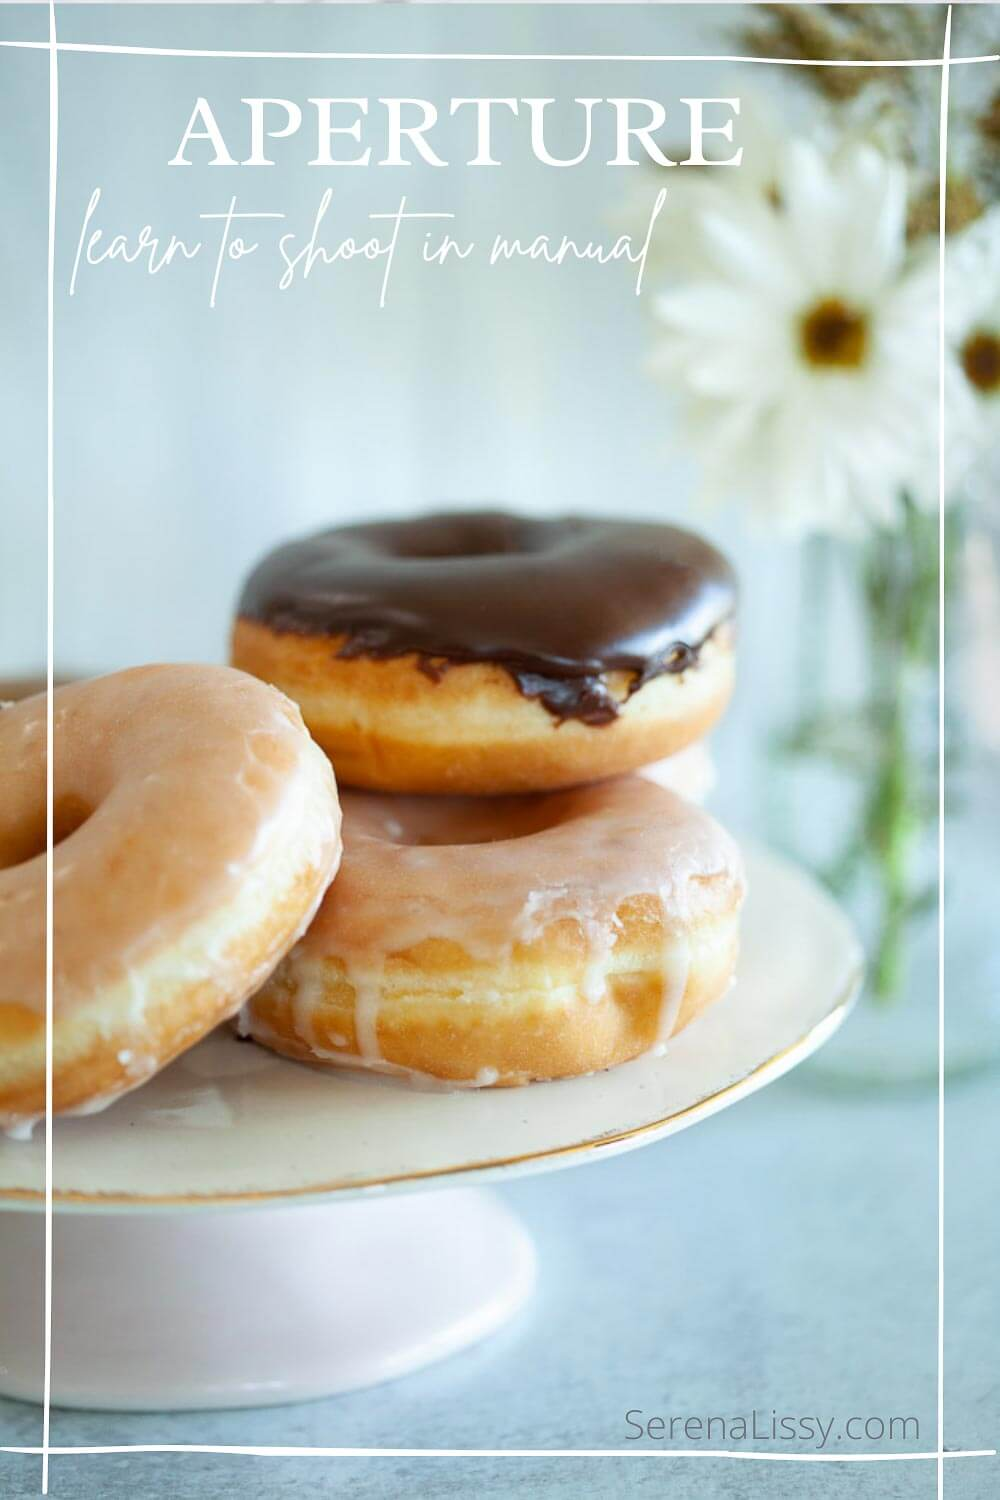 Aperture example of donuts and flowers in background